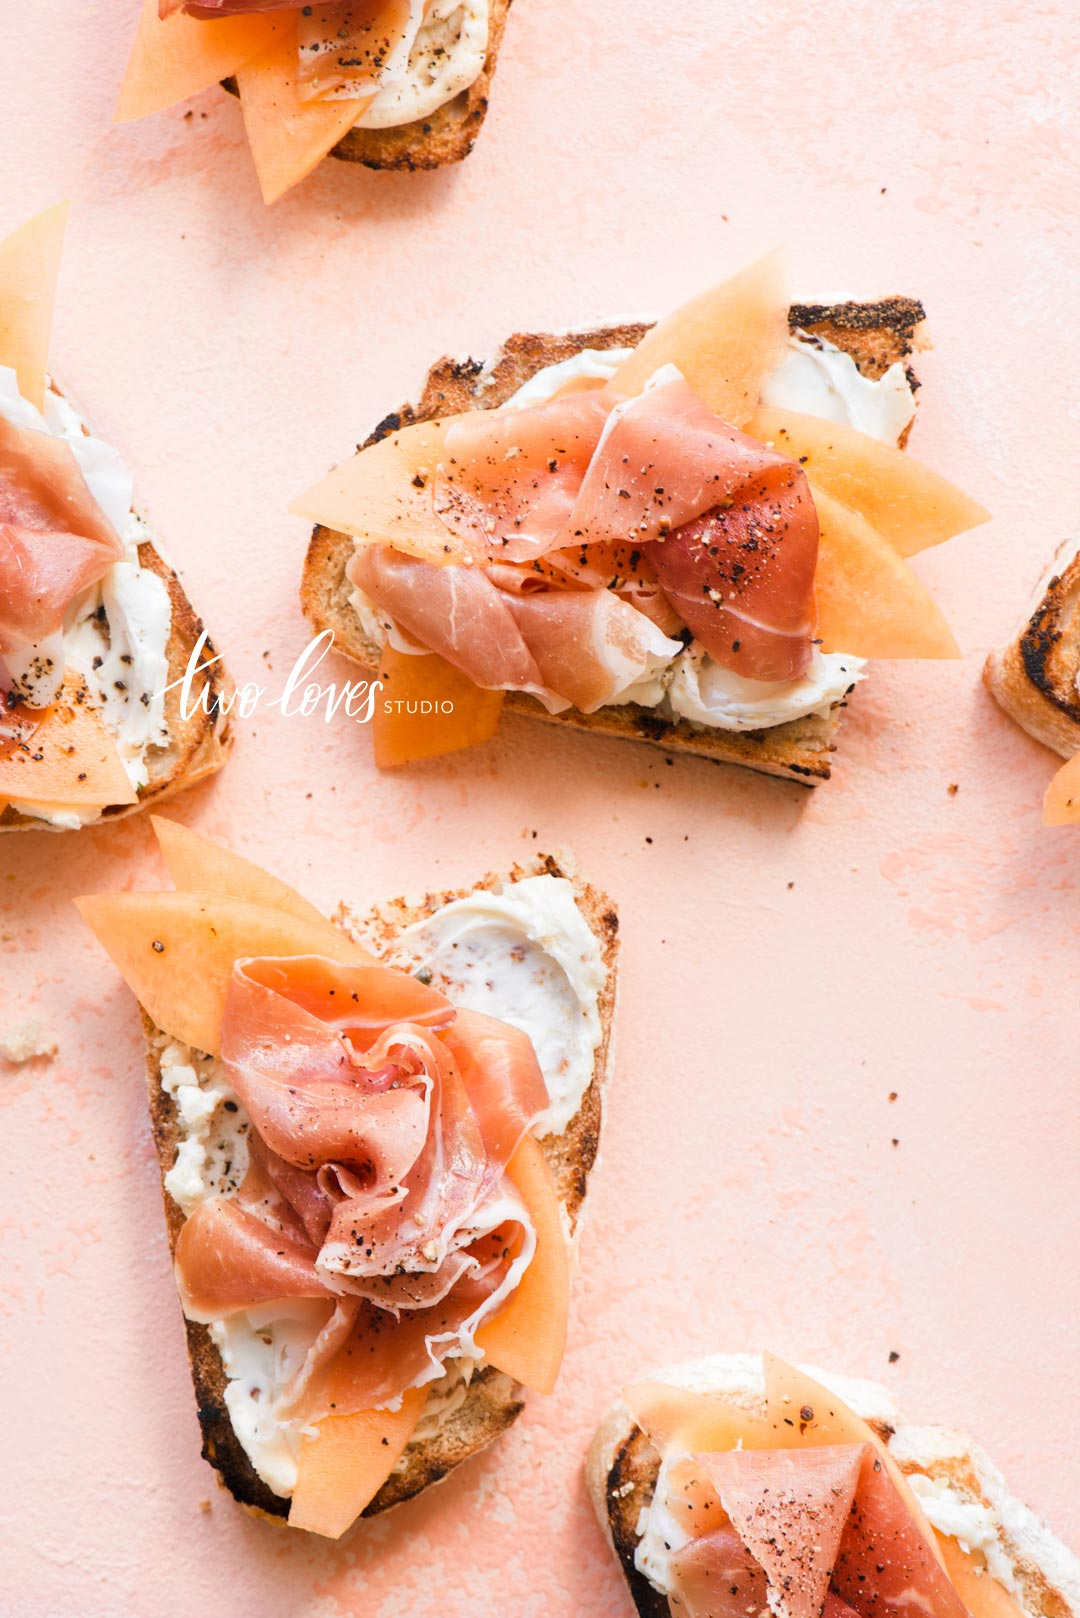 Pink backdrop on slices of toasted slices of bread with cream cheese and smoked salmon.